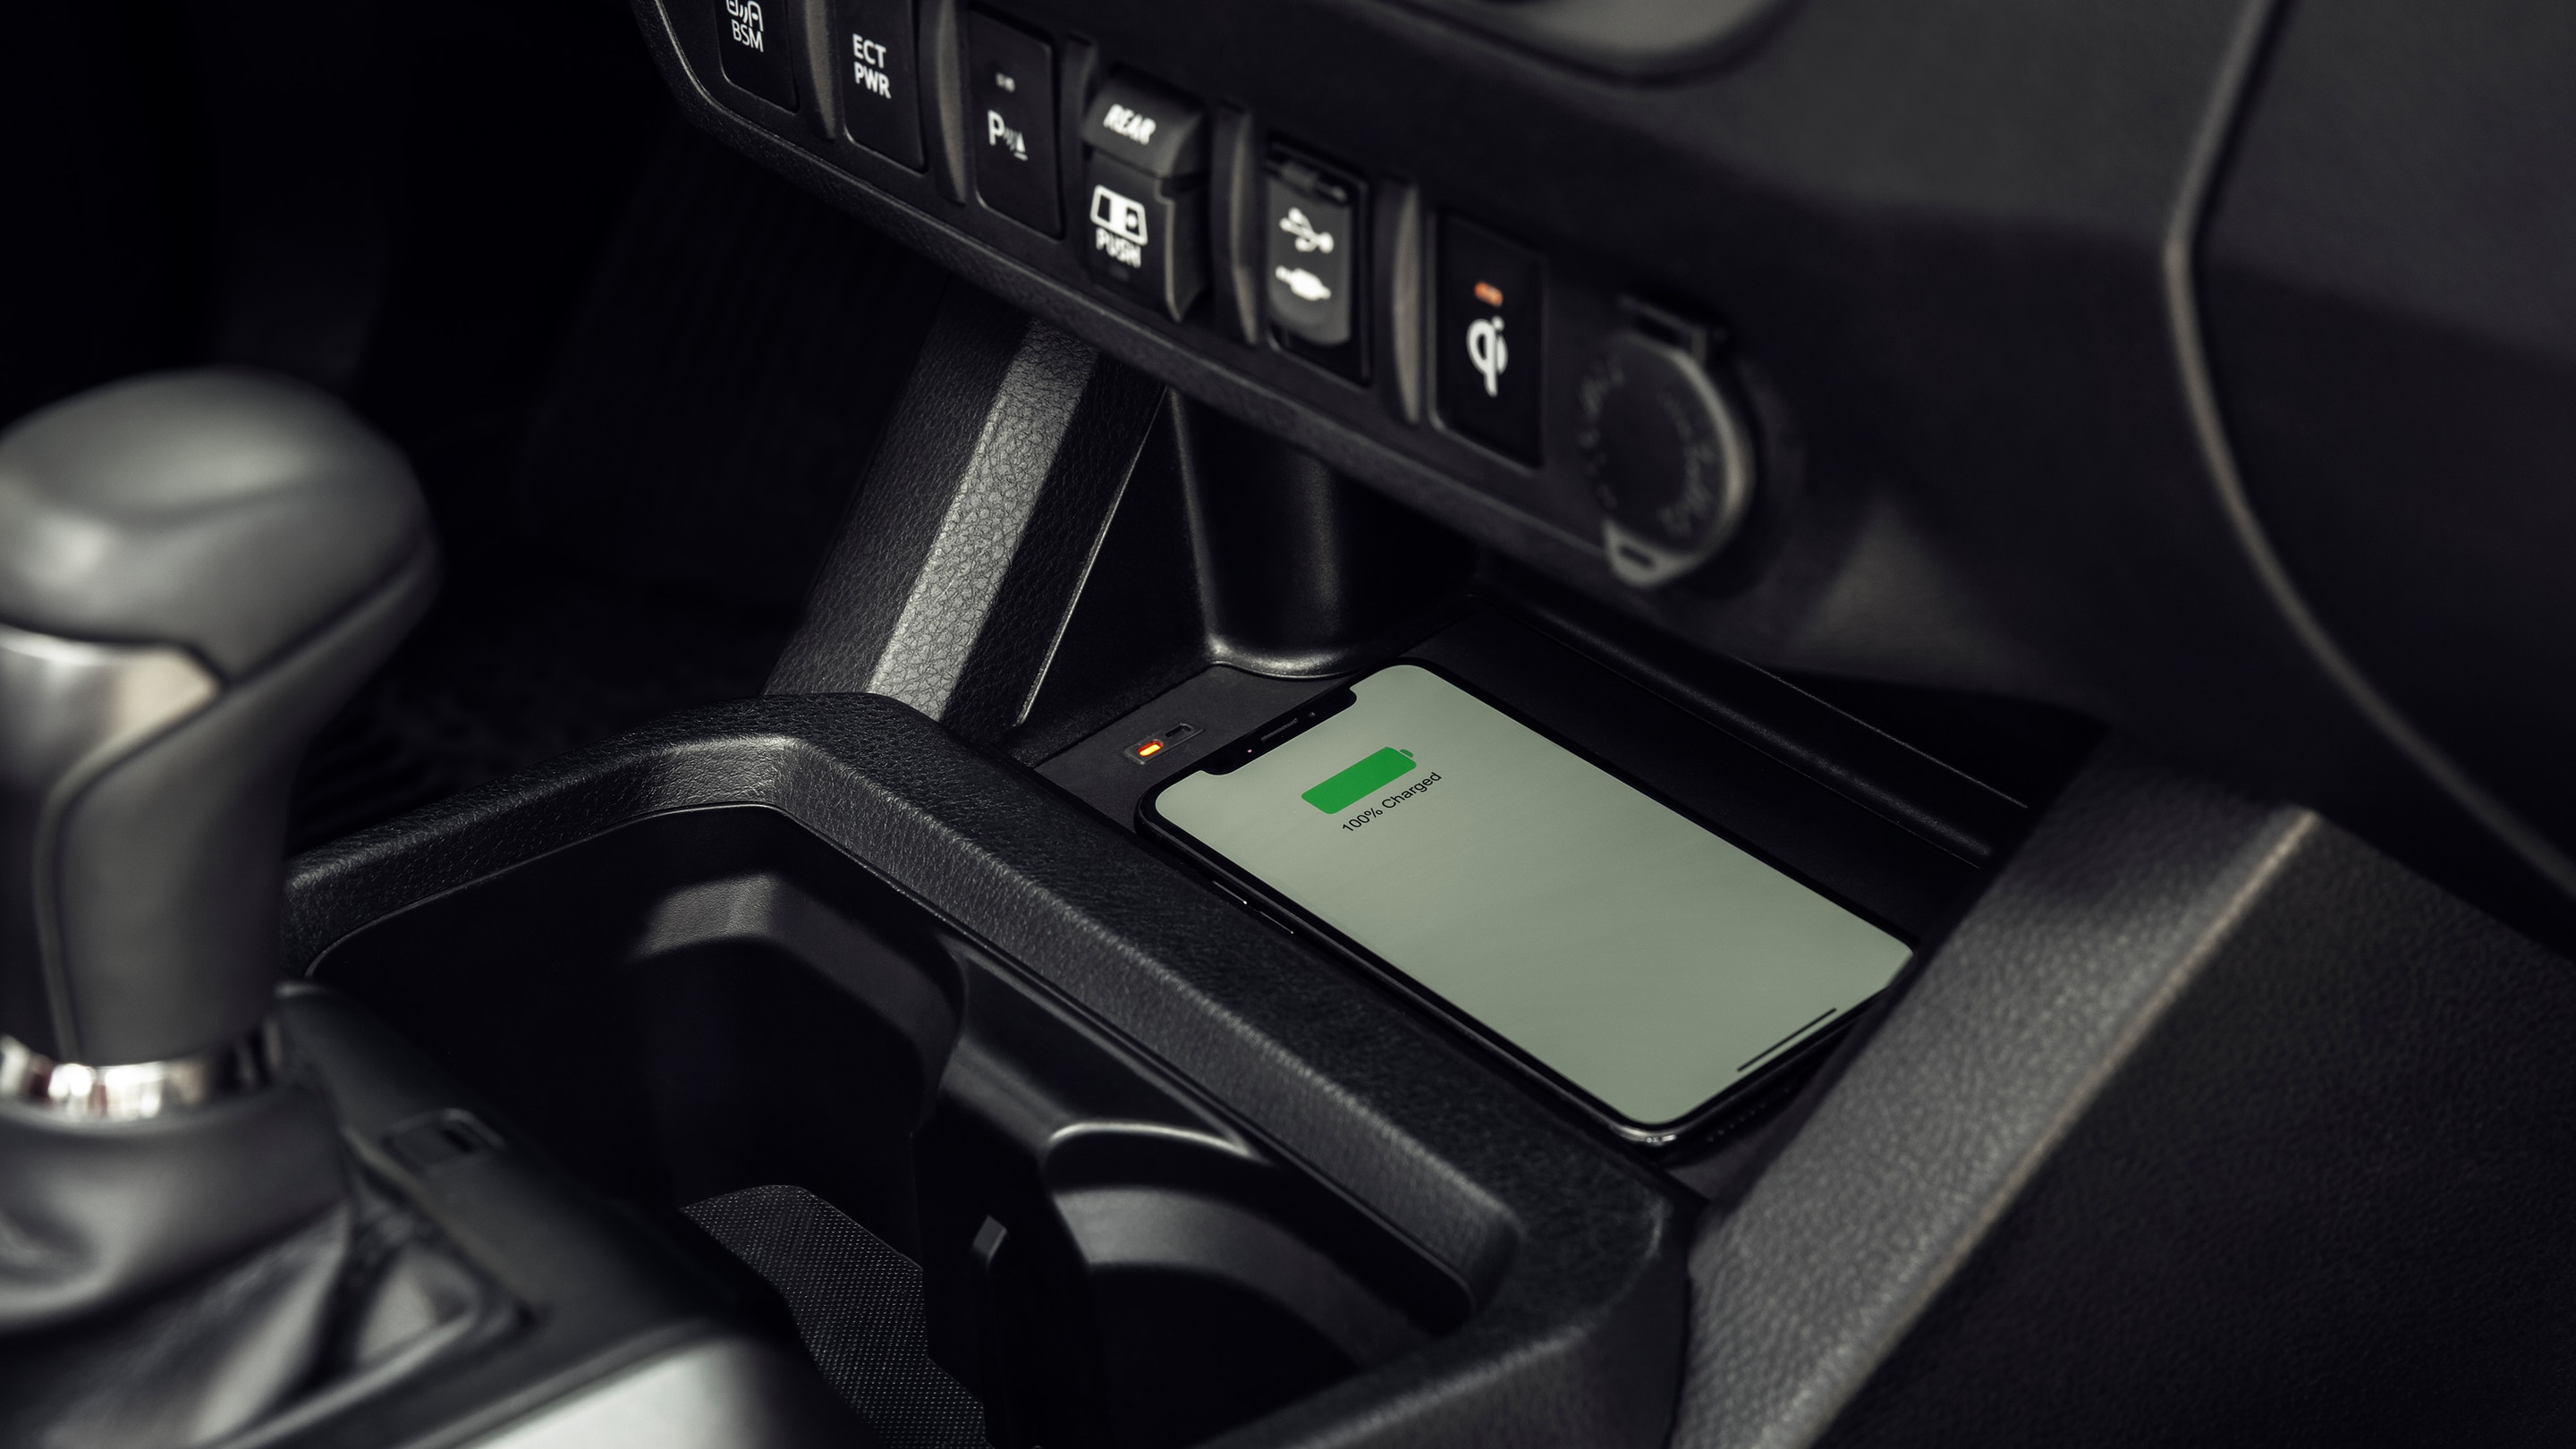 2019 Tacoma Wireless Charger